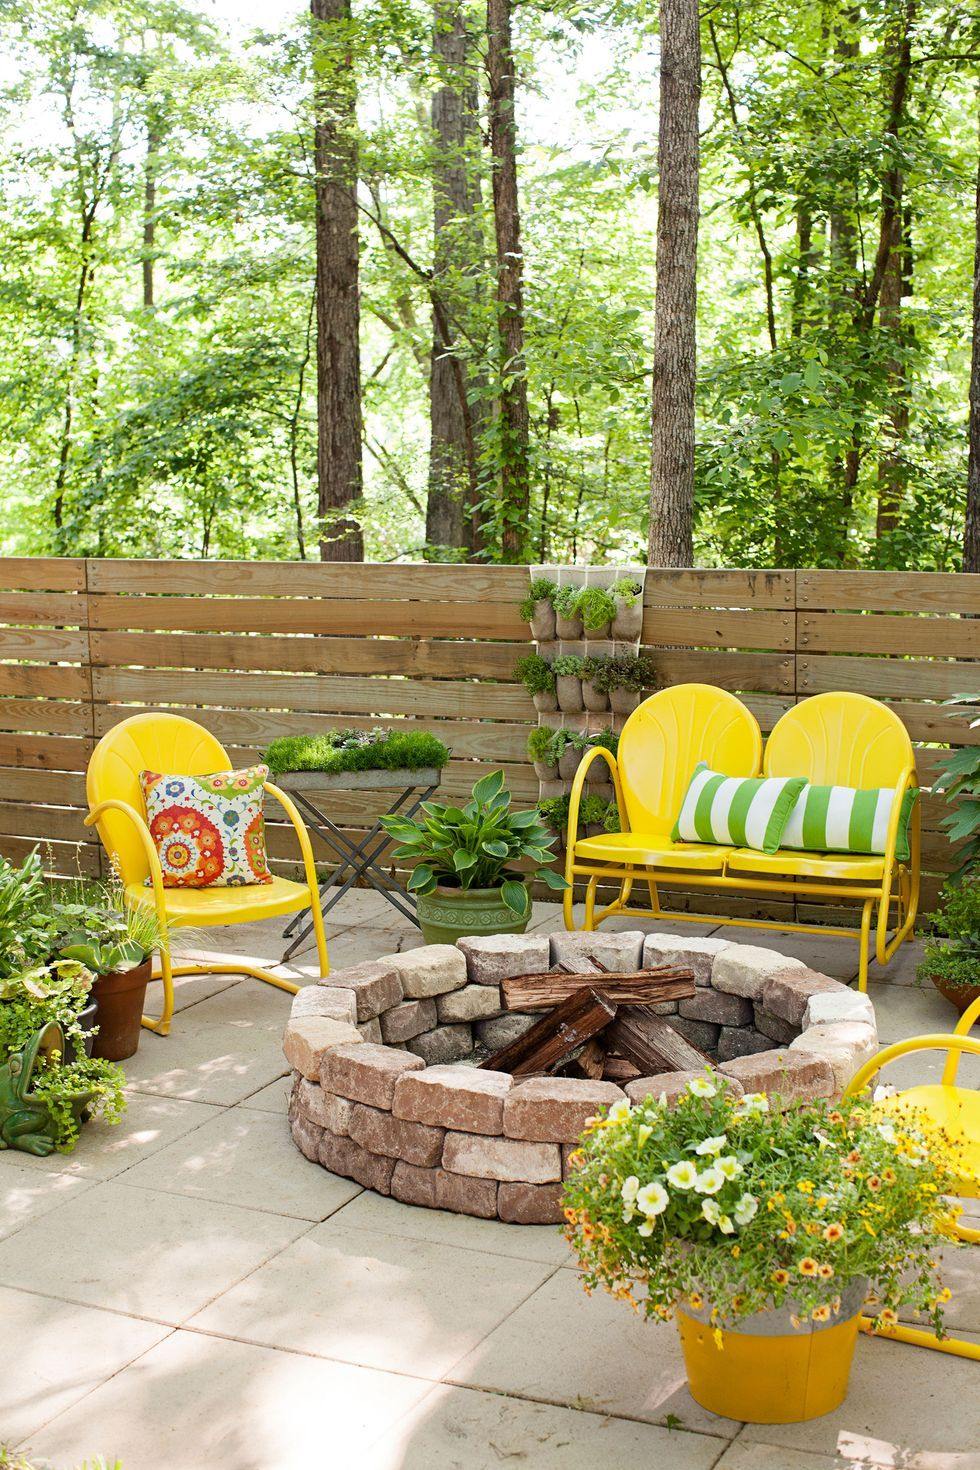 Image of: 20 Small Backyard Ideas Small Backyard Landscaping And Patio Designs